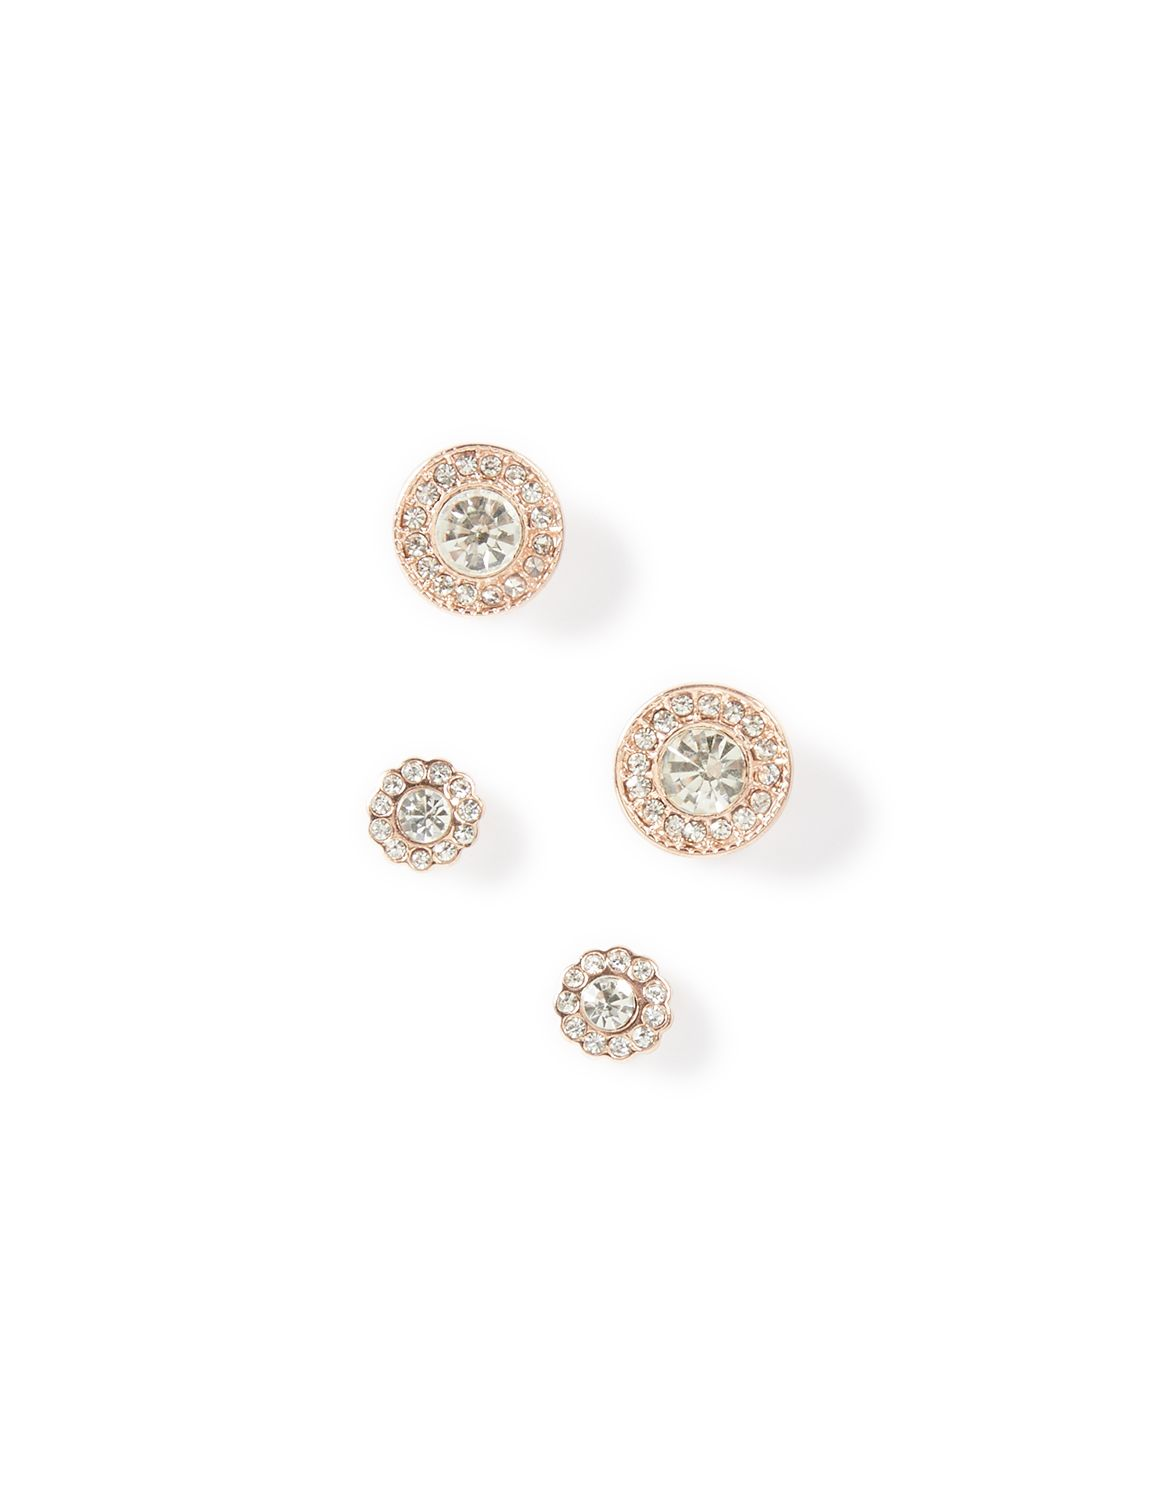 2-Pack Rhinestone Post Earrings